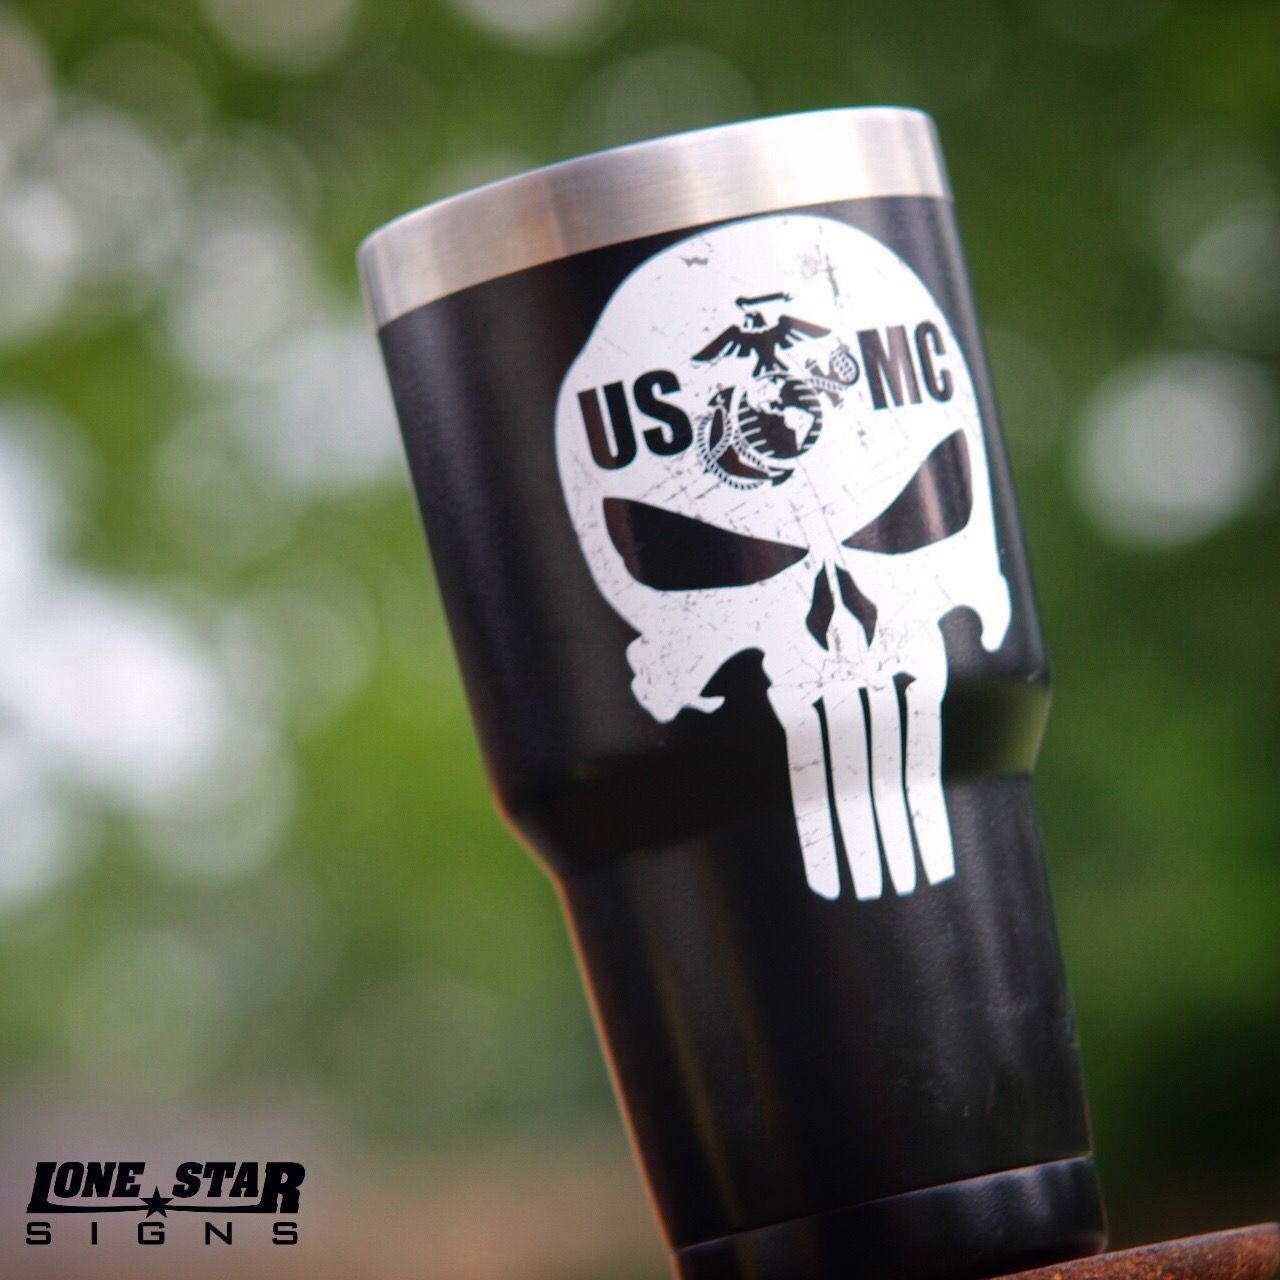 Usmc punisher stickers made by lone star signs online www lstarsigns com